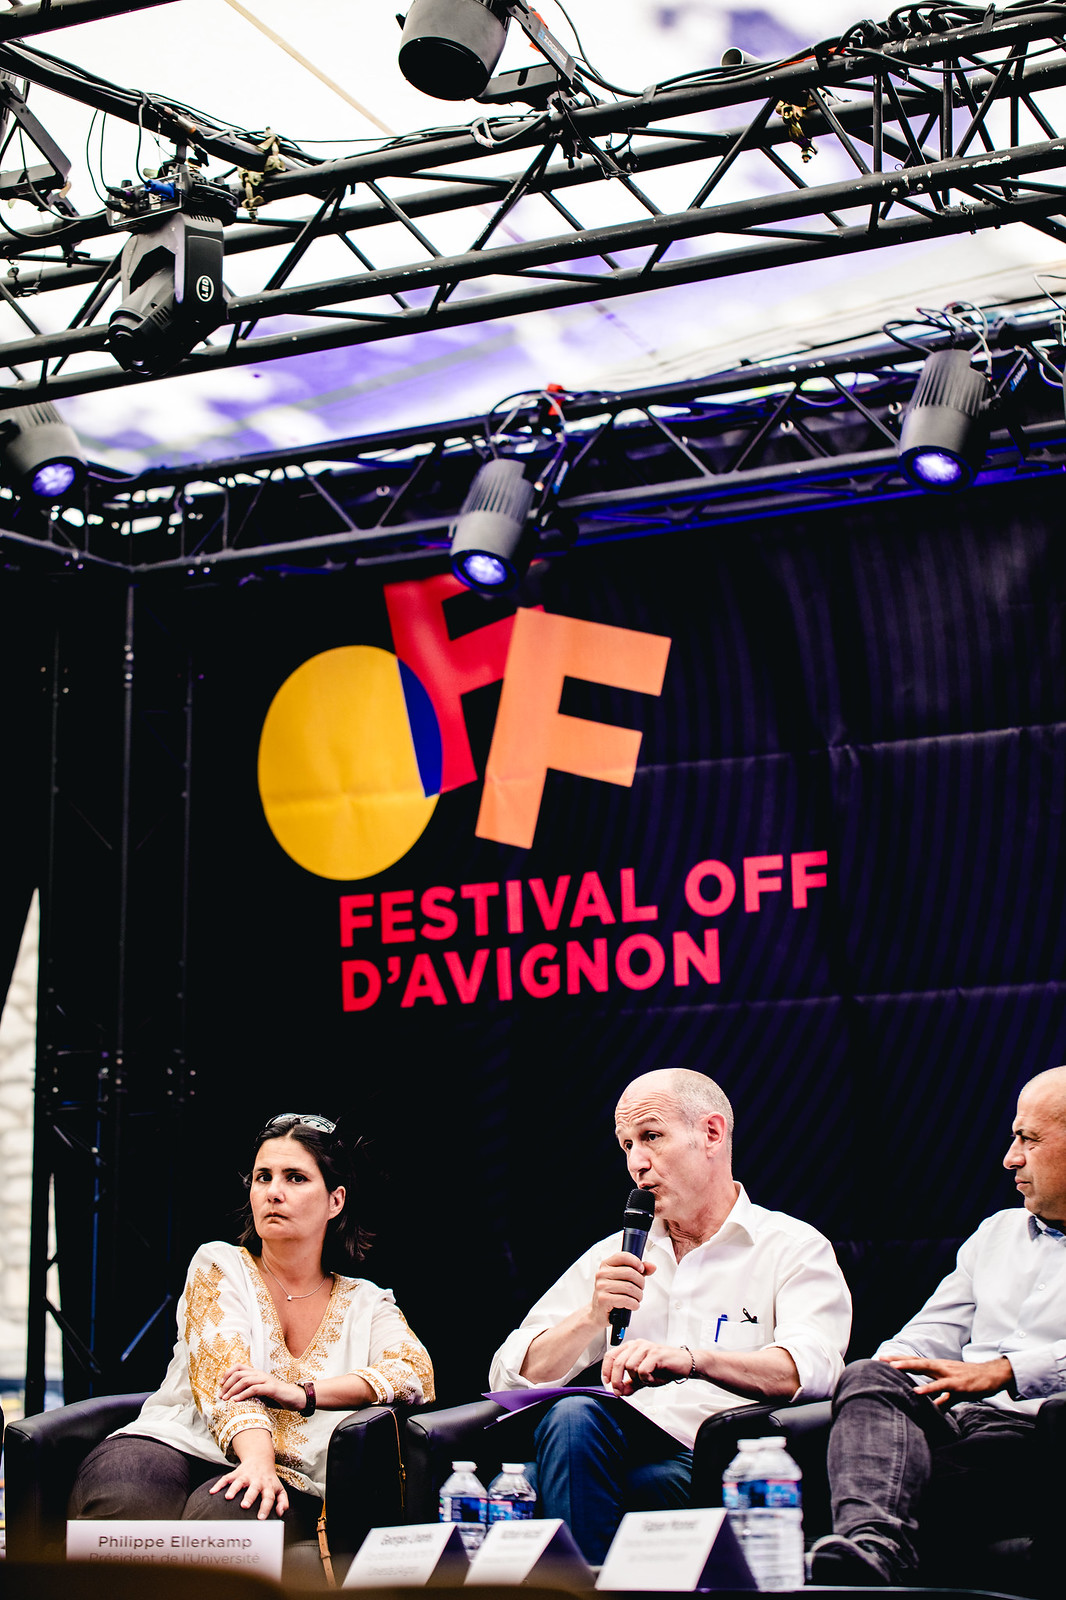 L'université d'Avignon acteur du festival et du renouvellement des publics | The University of Avignon, a major actor in the festival and in the audiences renewal